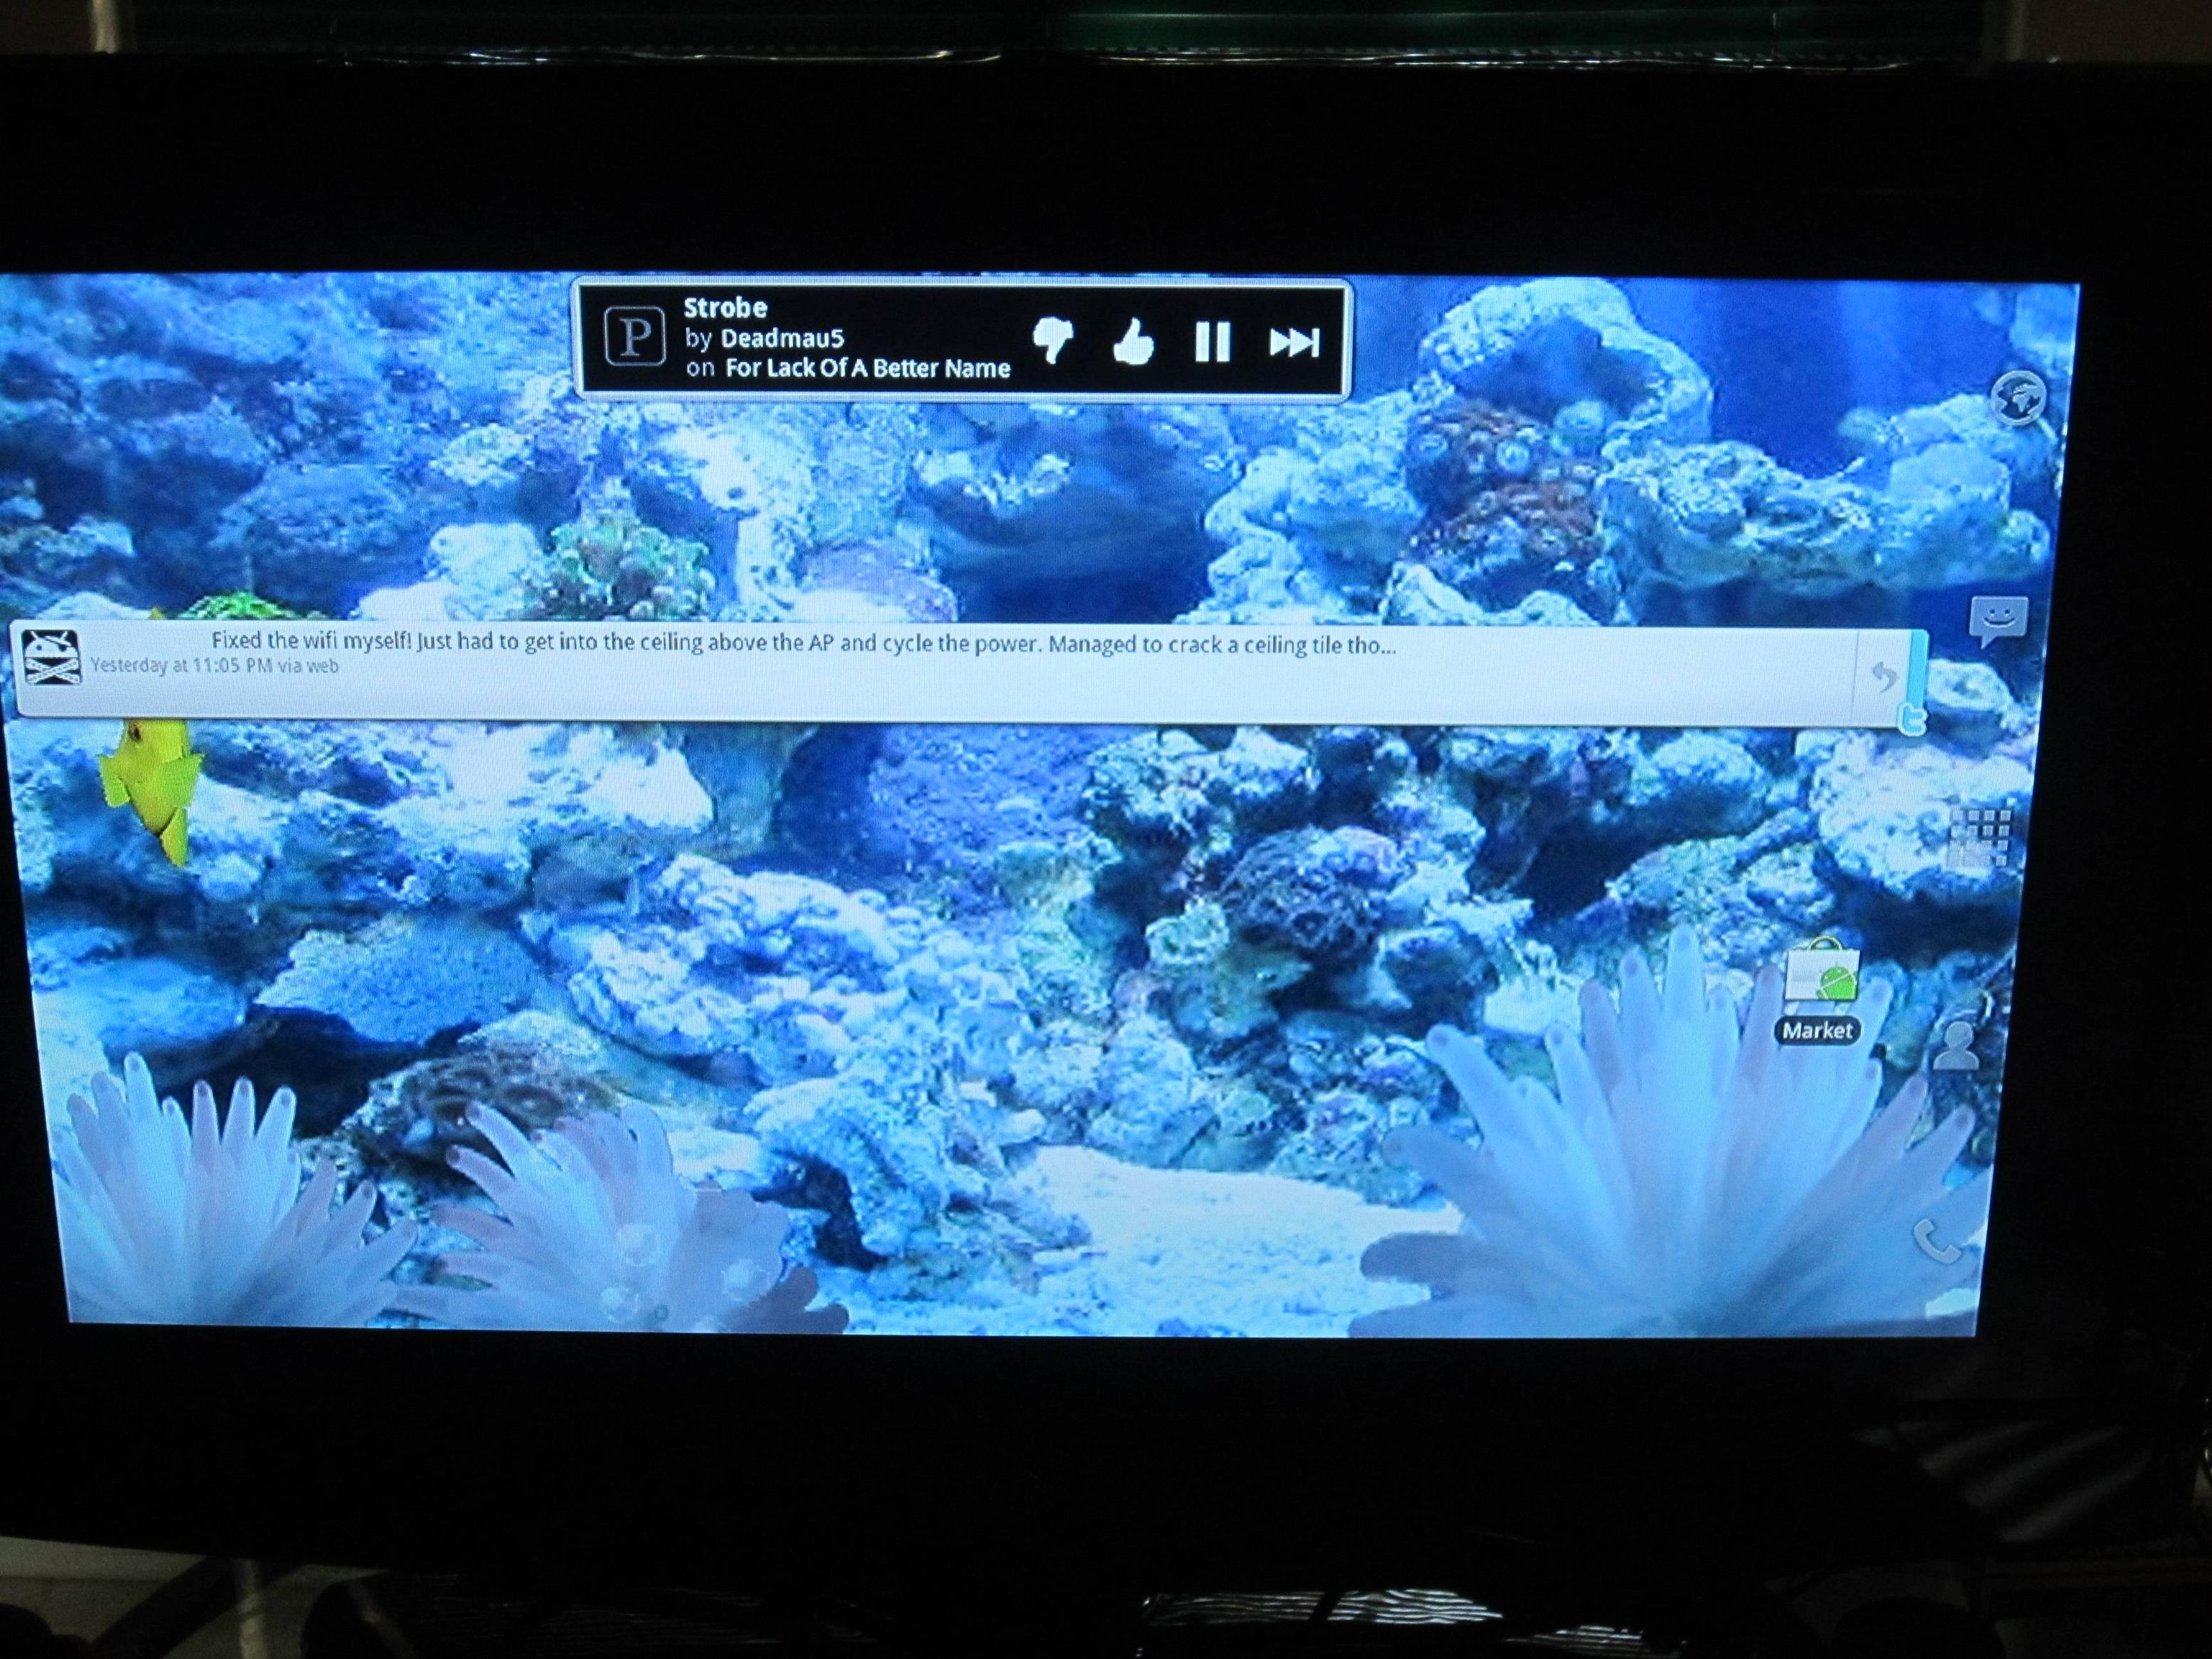 Google Tv Live Wallpapers Live Wallpapers For Android 2 2 3110x2333 Wallpaper Teahub Io